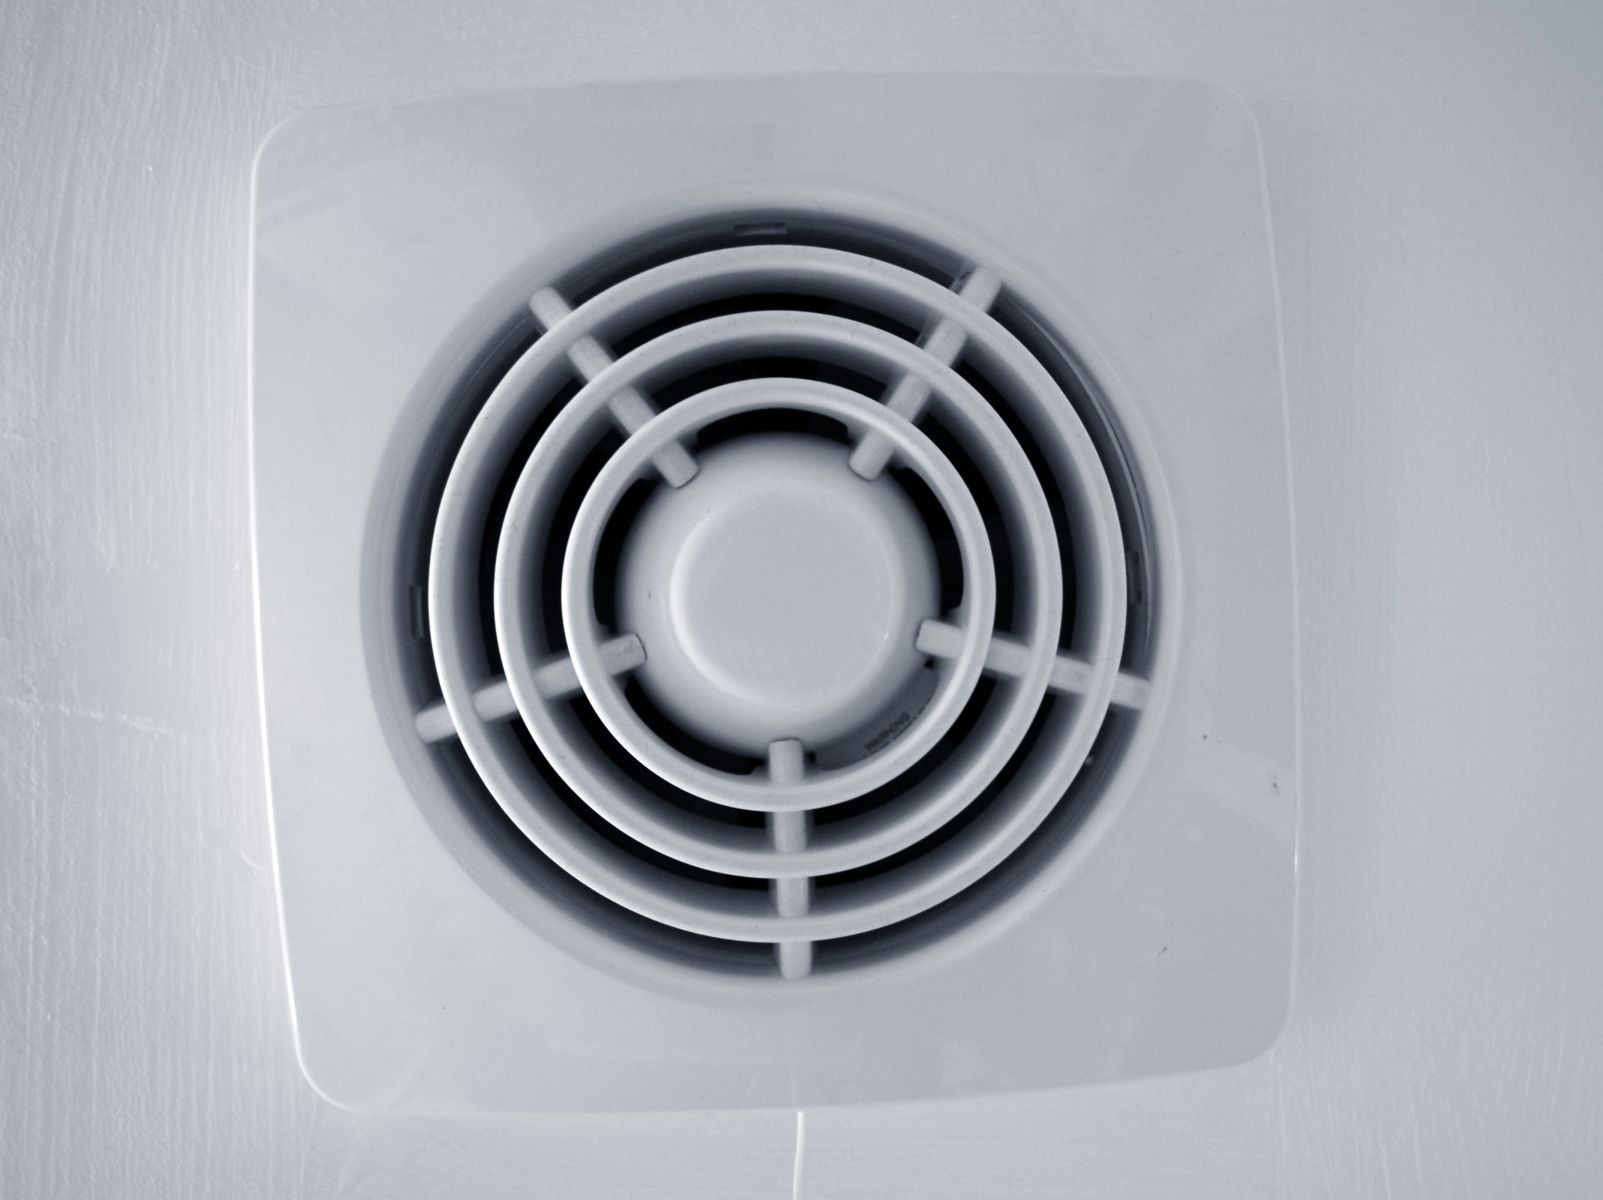 kitchen exhaust repair showrooms near me the best location to install a bathroom ventilation fan